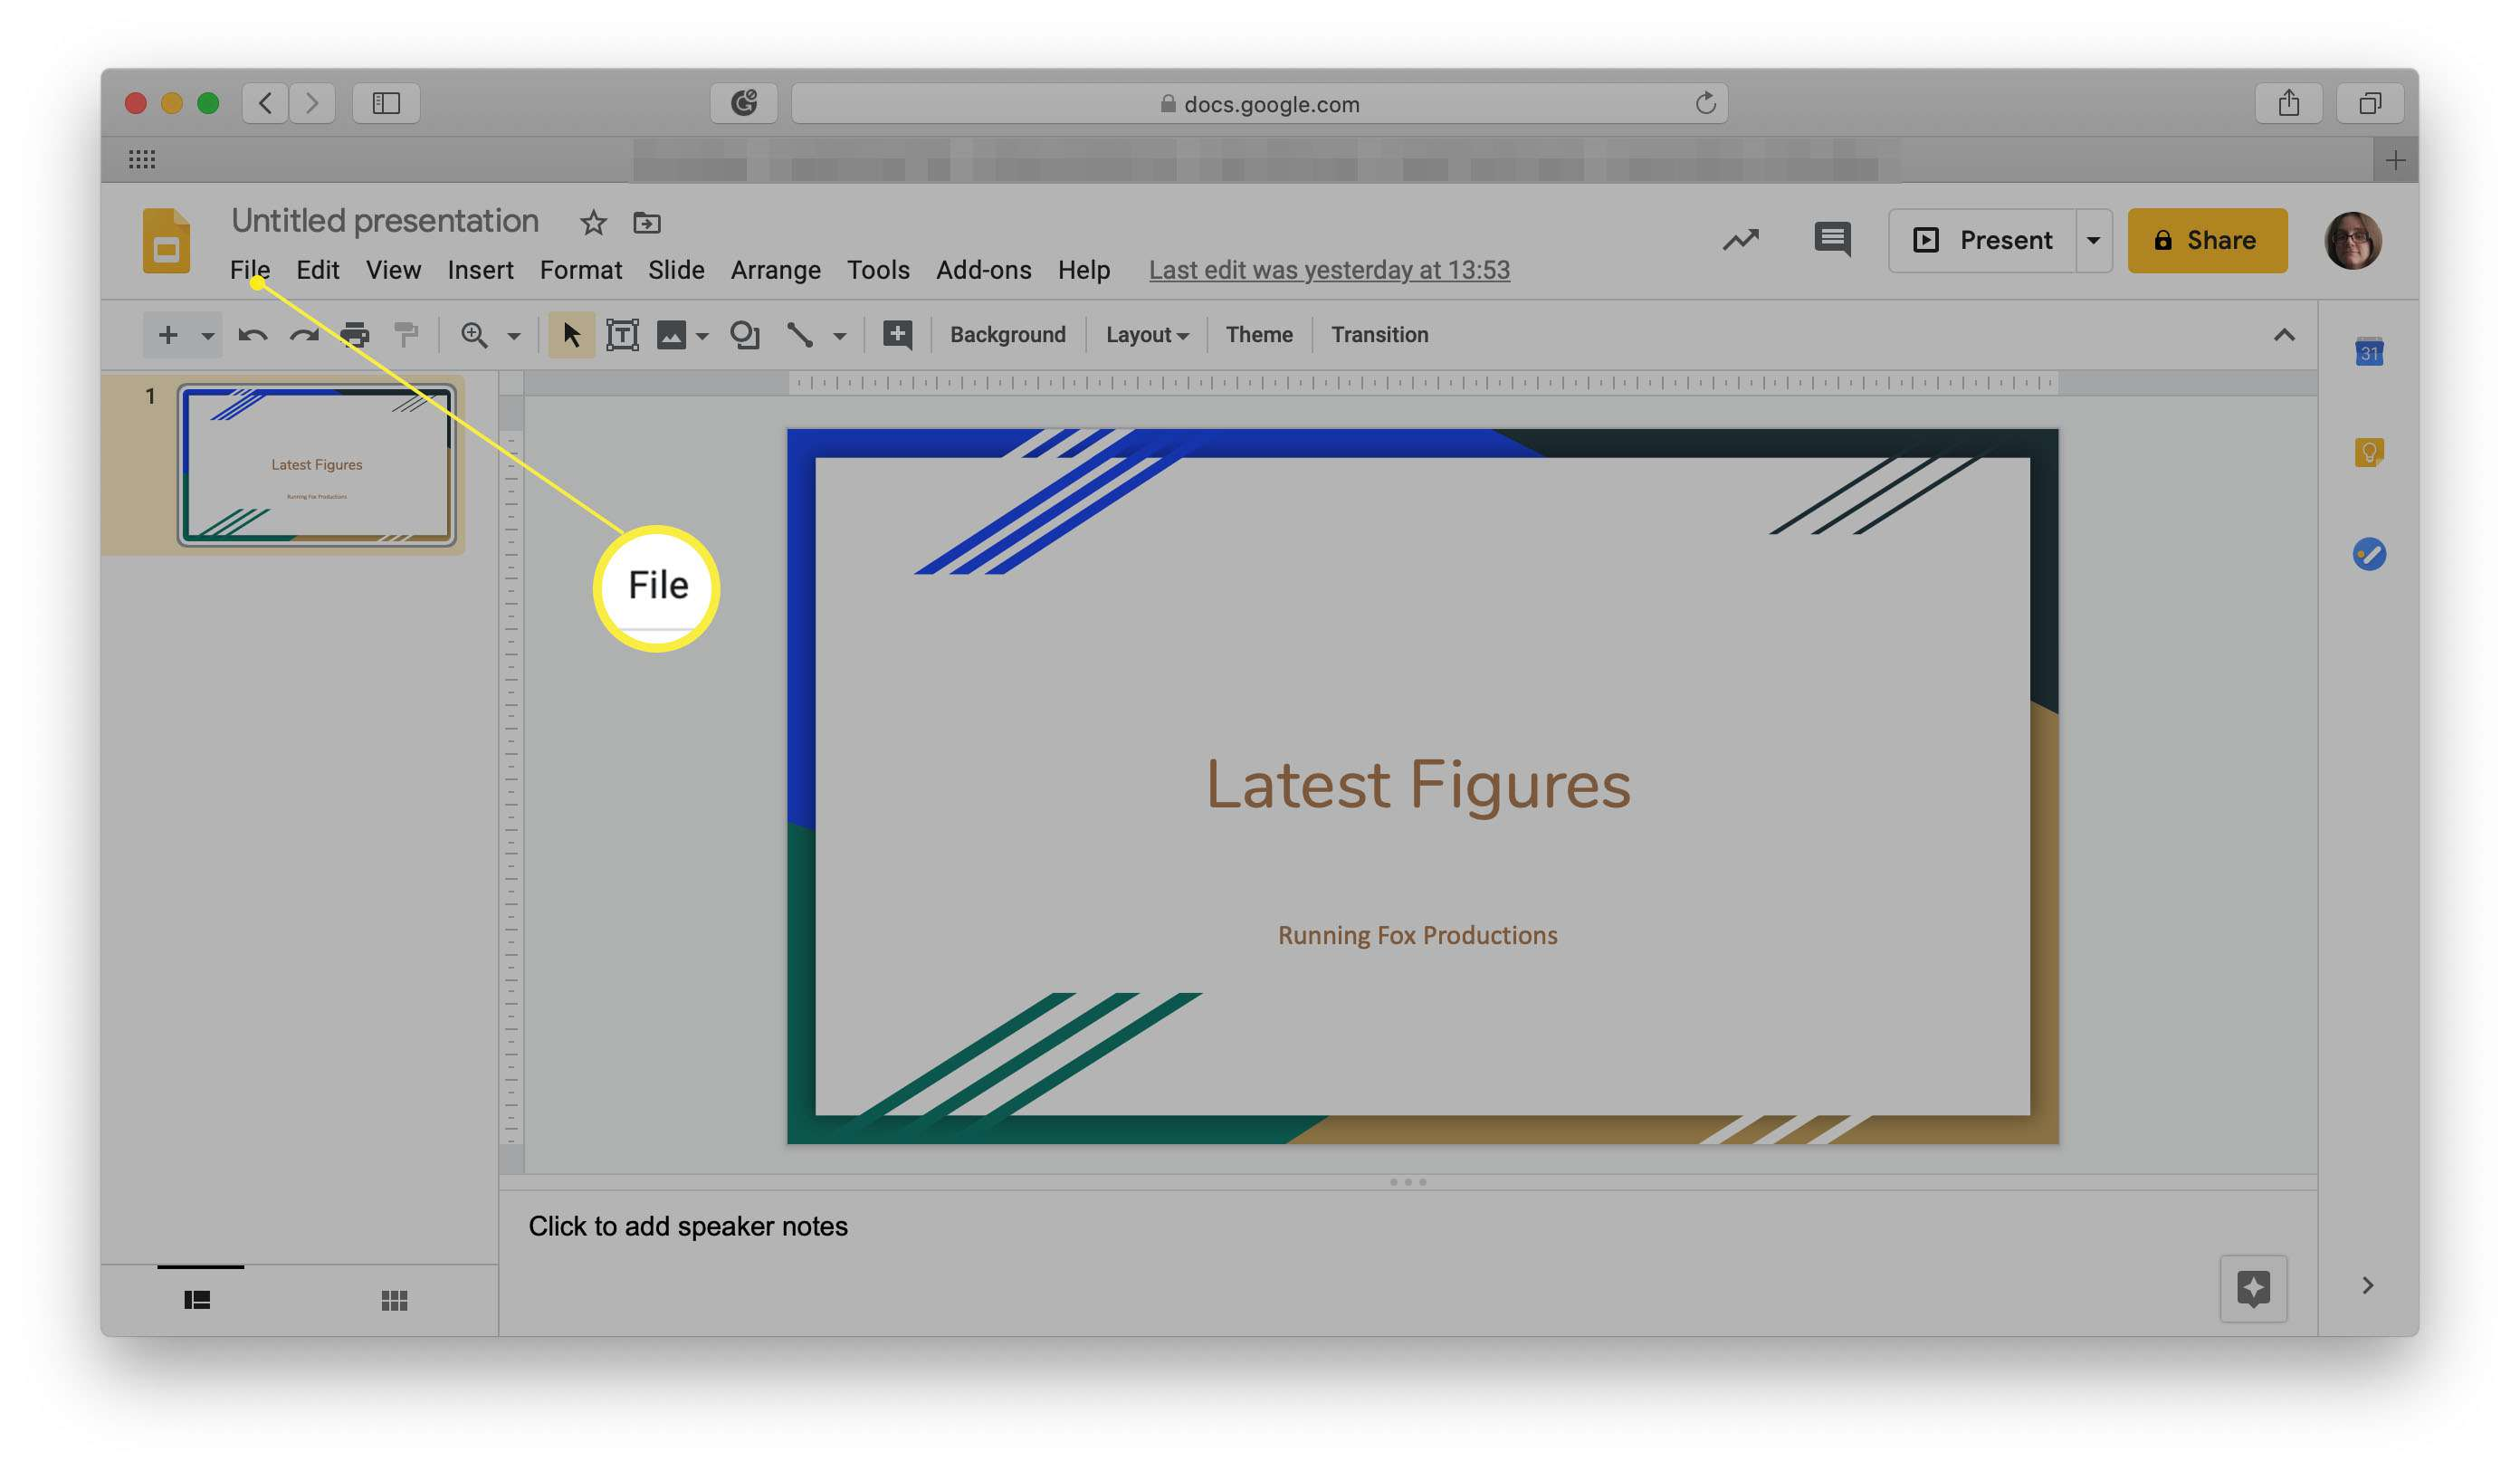 Google Slides with File highlighted